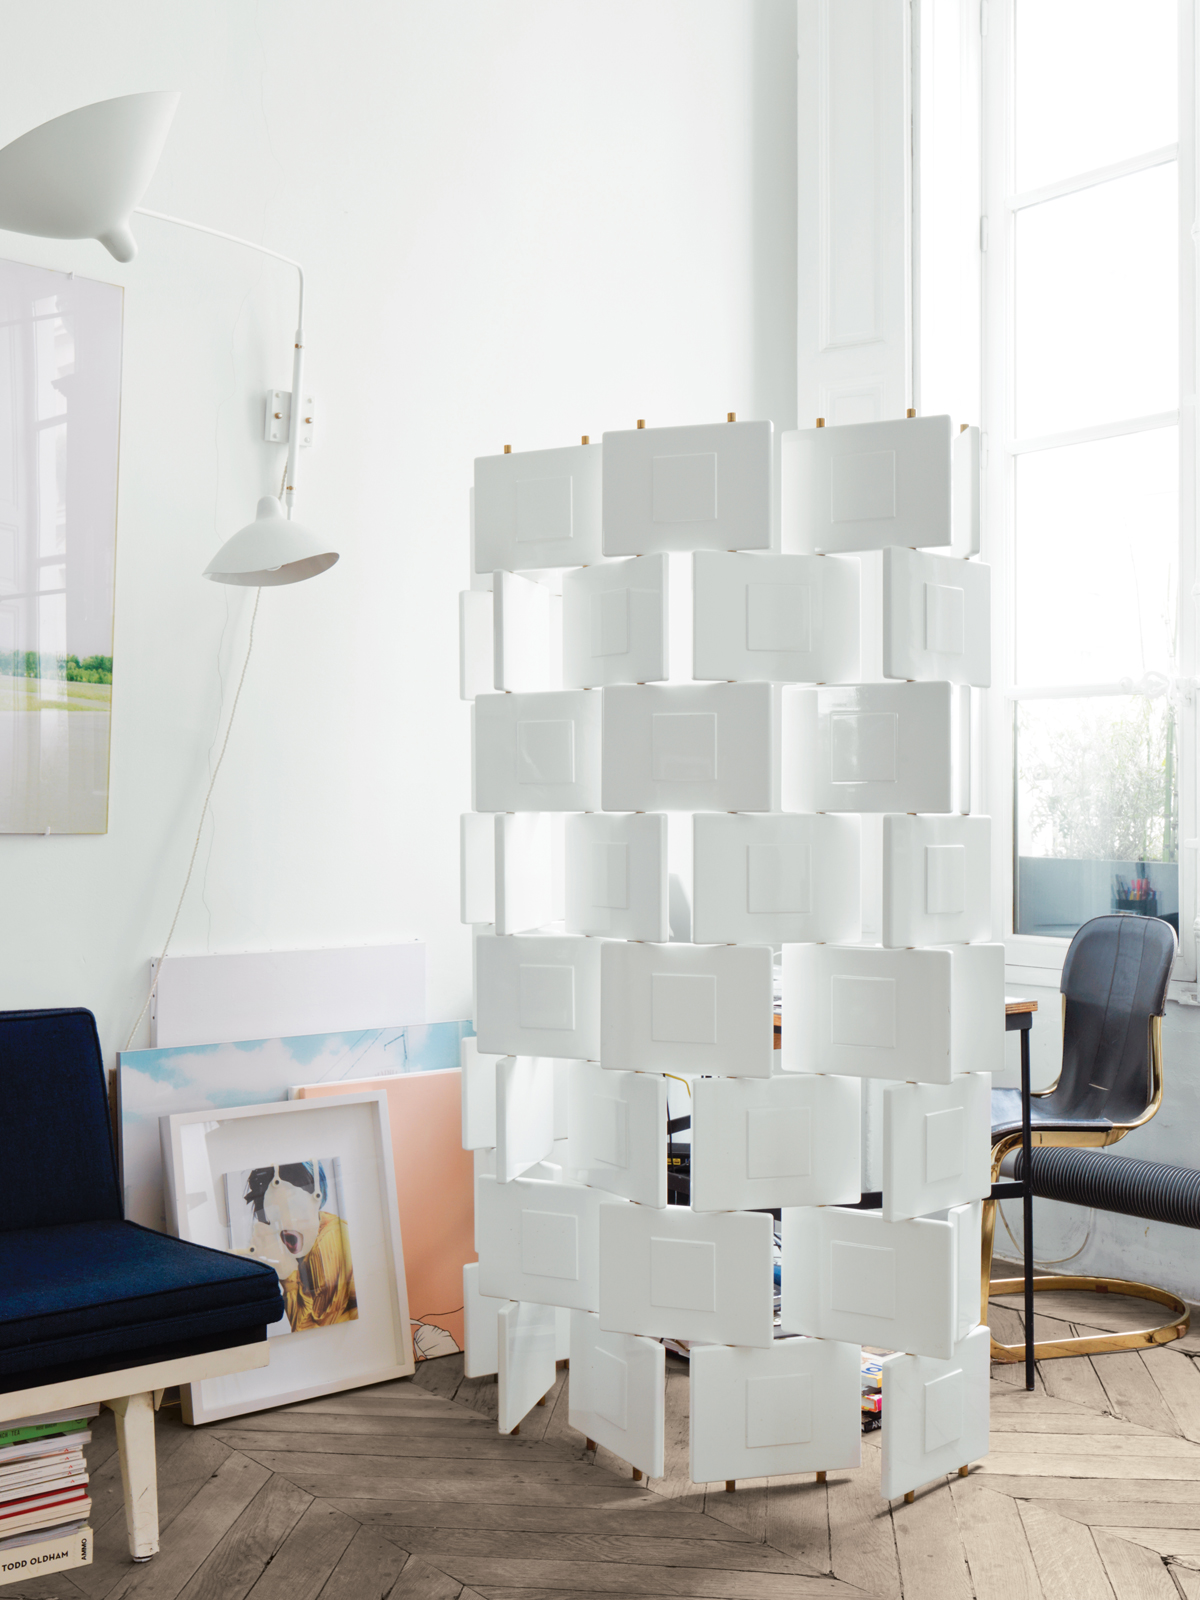 Eileen Gray Inspired Screen-Partition